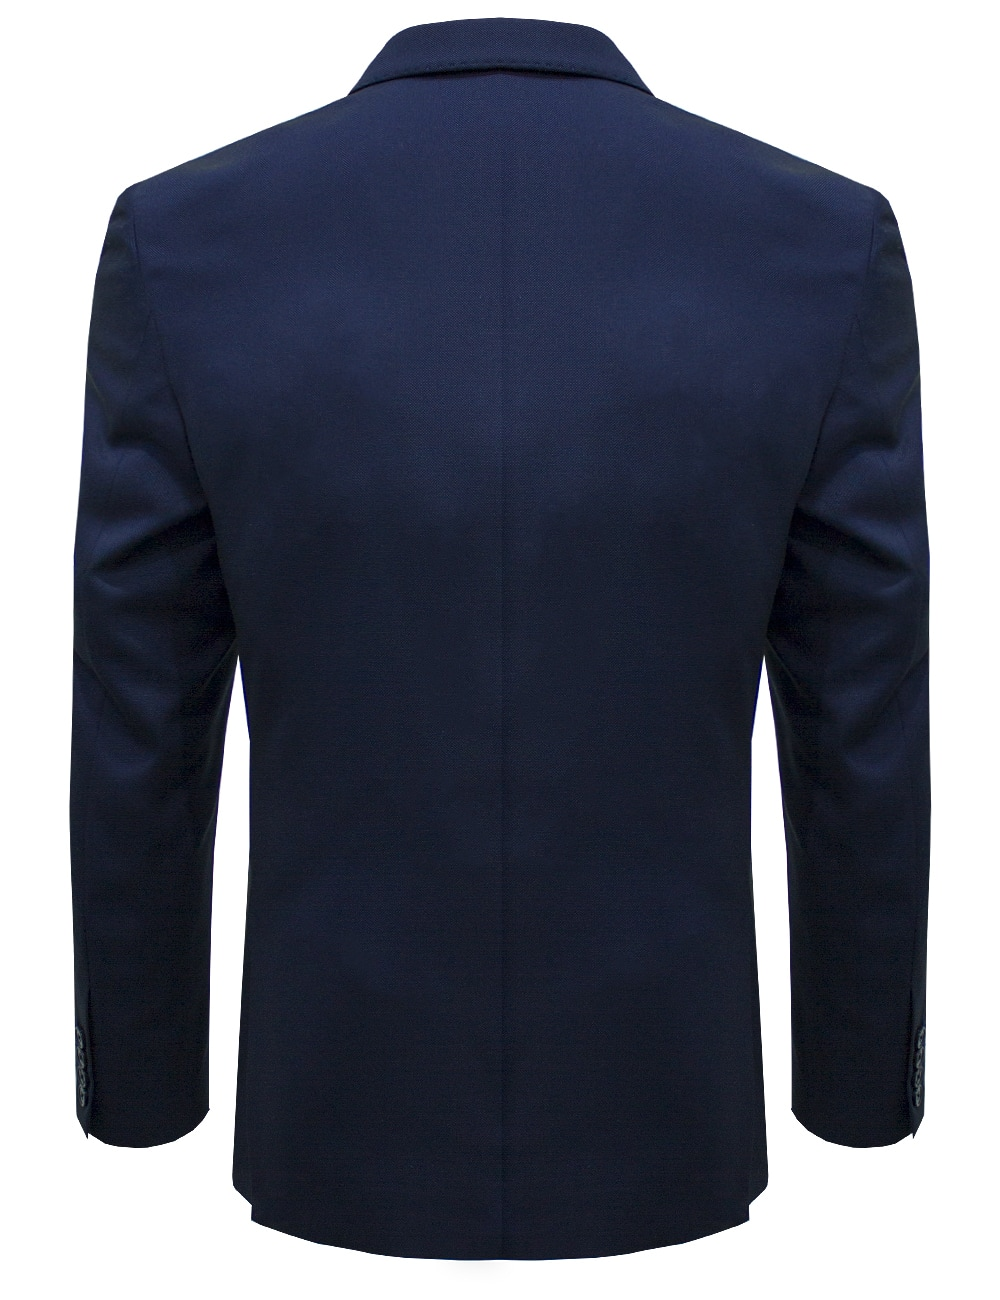 Slim / Tailored Fit Navy Suit Jacket SJ4.3-SS4.3